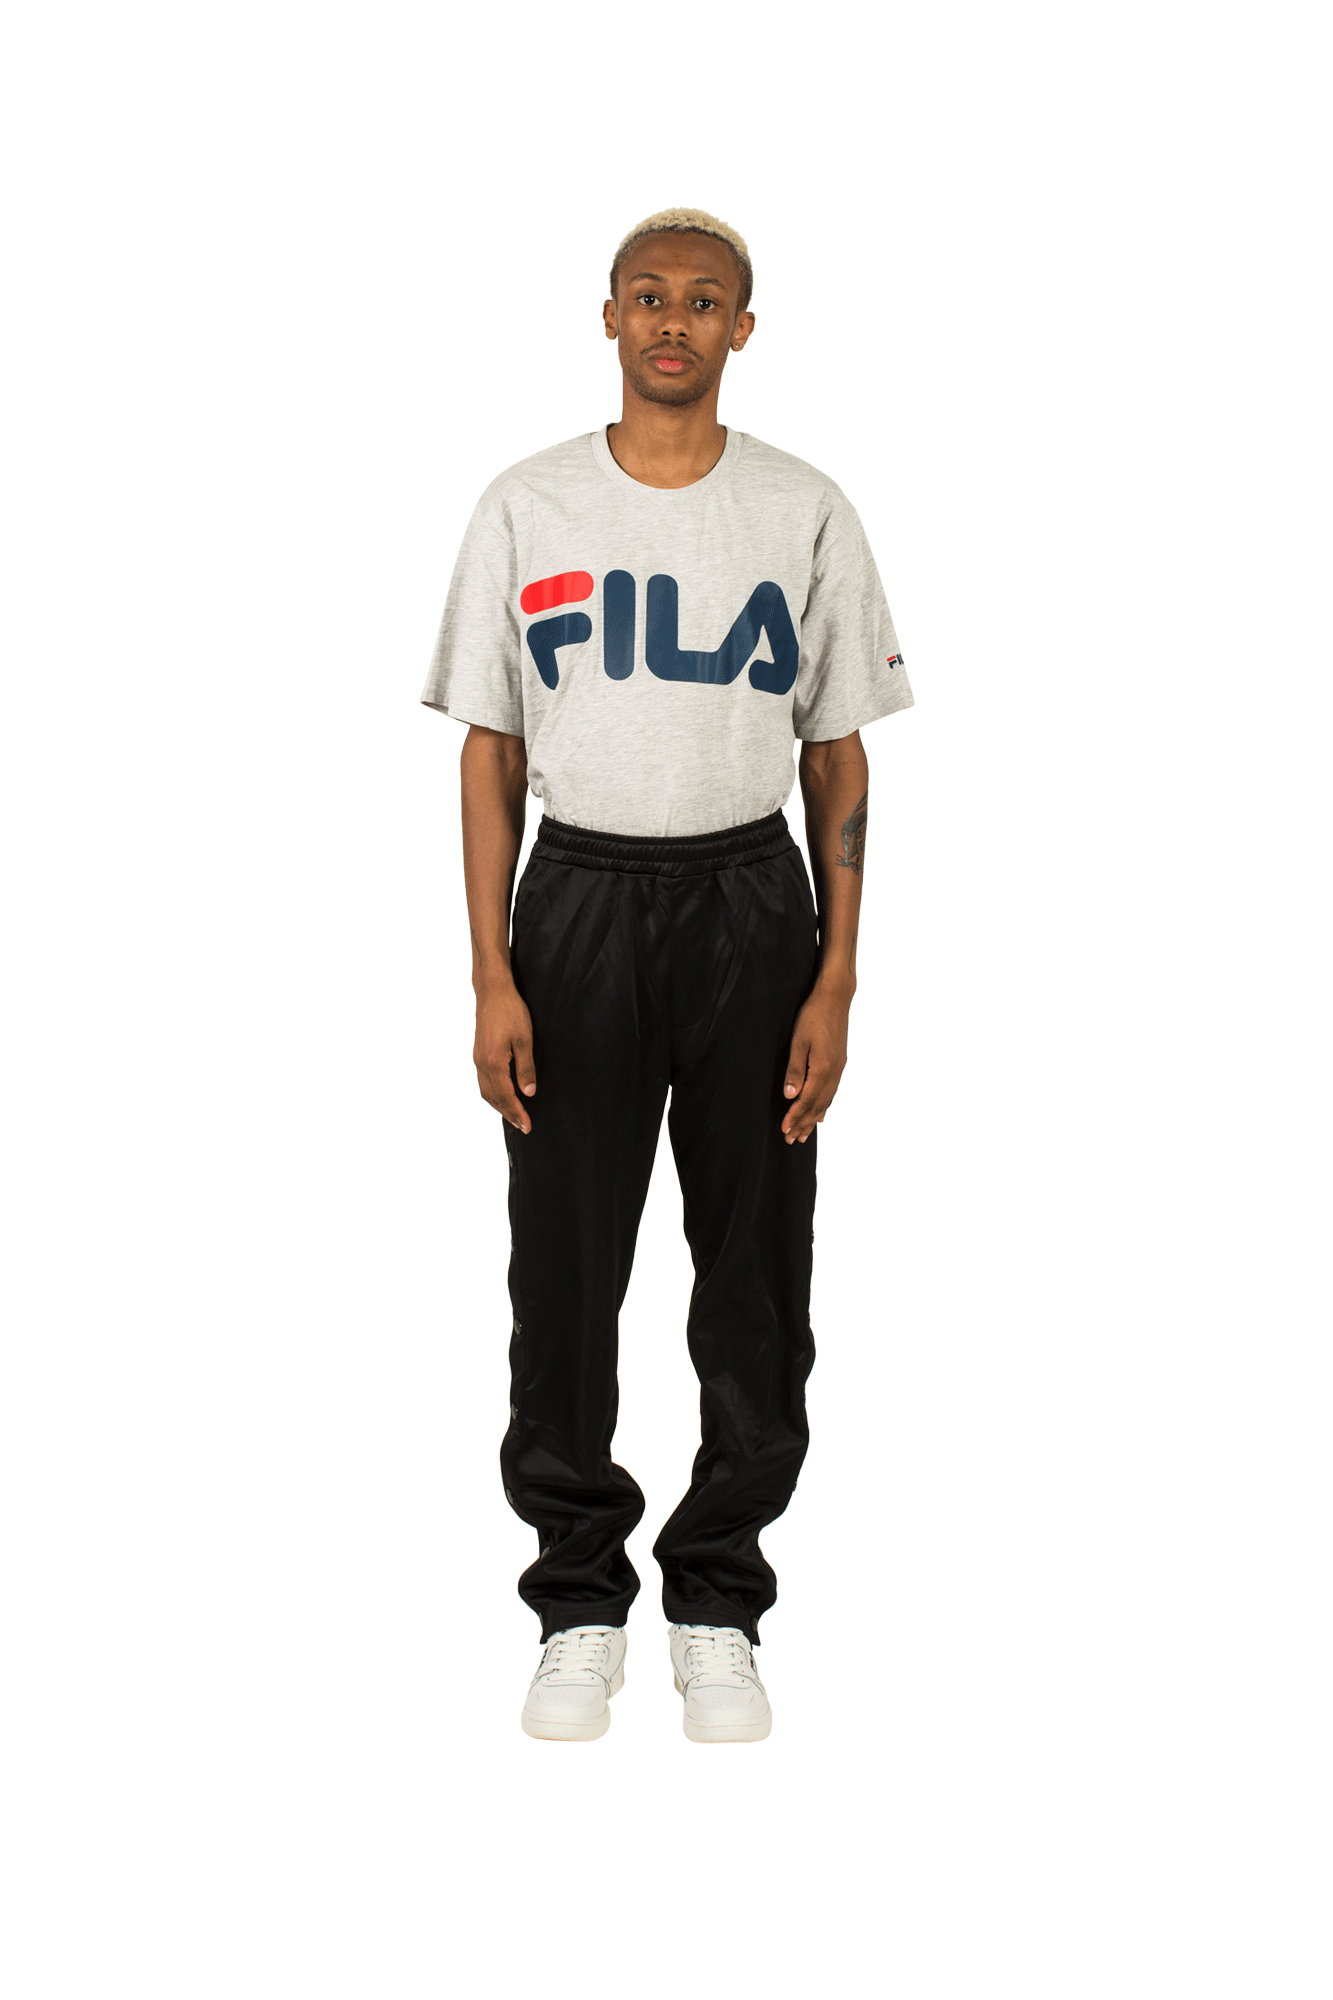 Fila Sweatpants Naolin Track Pants Buttoned Black 682354002#000#C0010#XS - One Block Down